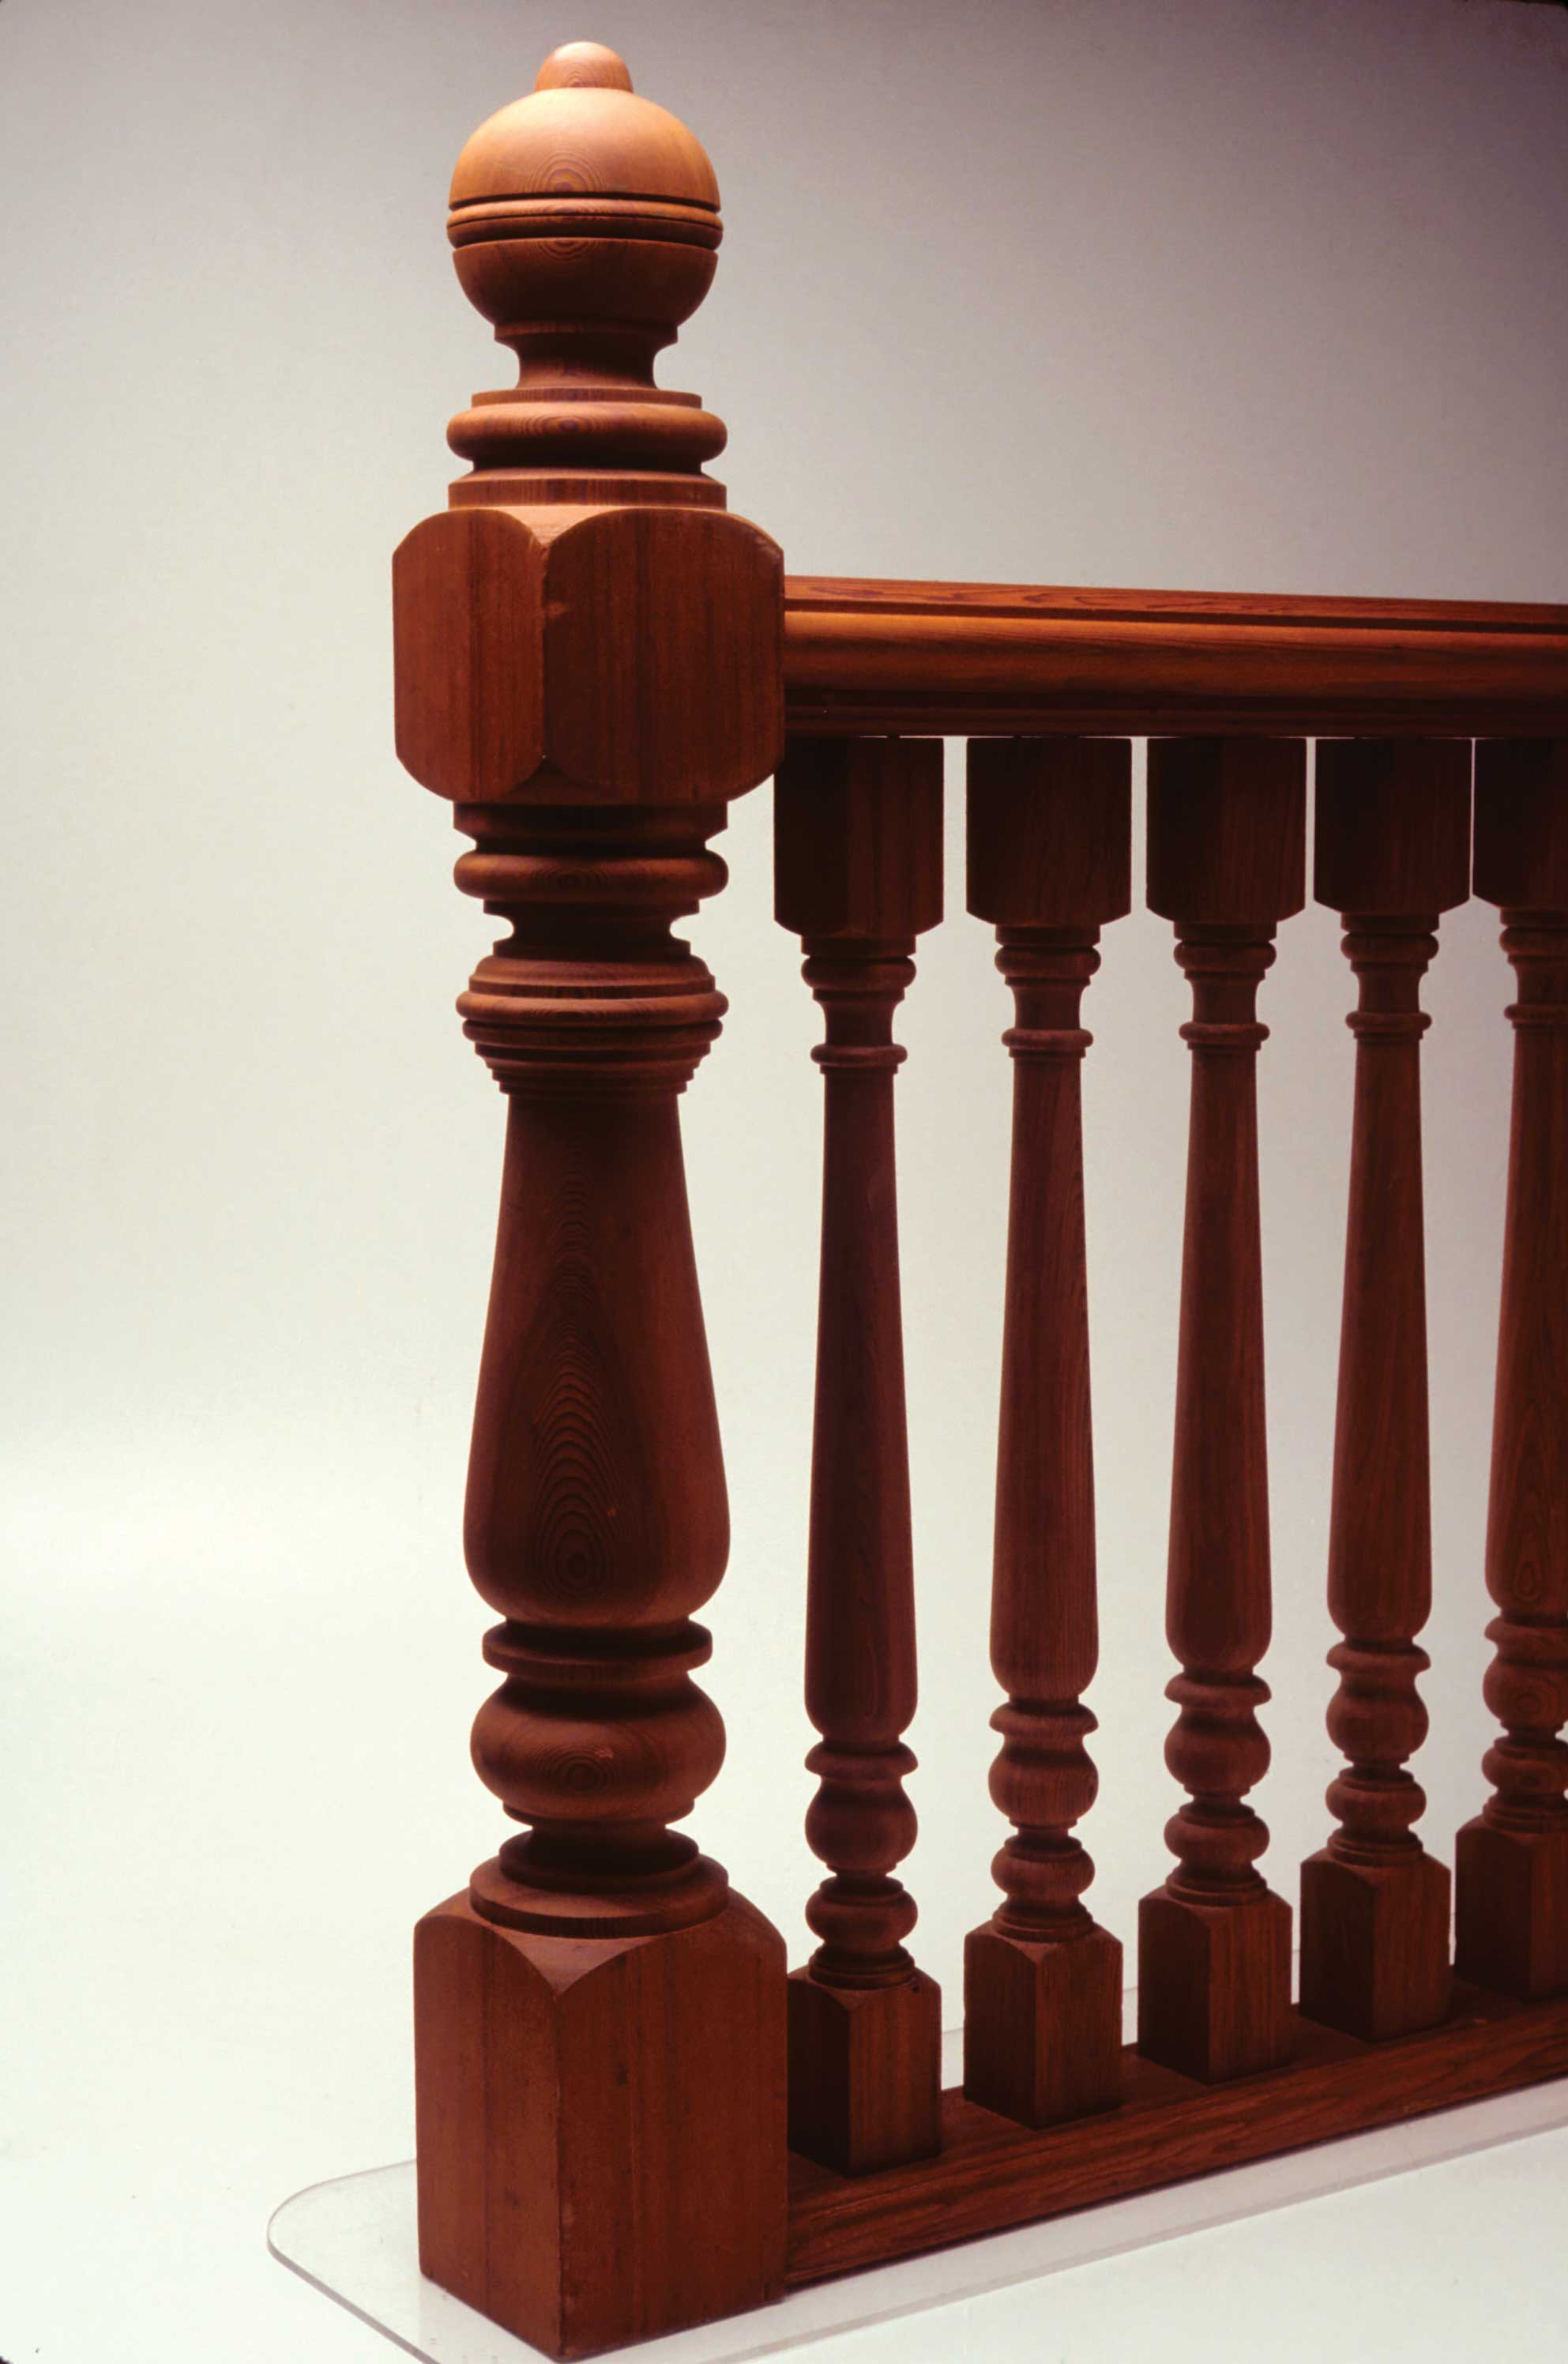 Fig. 8.  Gail Redman, United States.  Railing with Newel Post , 1983. Redwood. 44 1/2 x 5 1/2 x 39 1/2 in. Donated by the Artist.  The Center for Art in Wood's Museum Collection.  OBJ 58. Photo: John Carlano